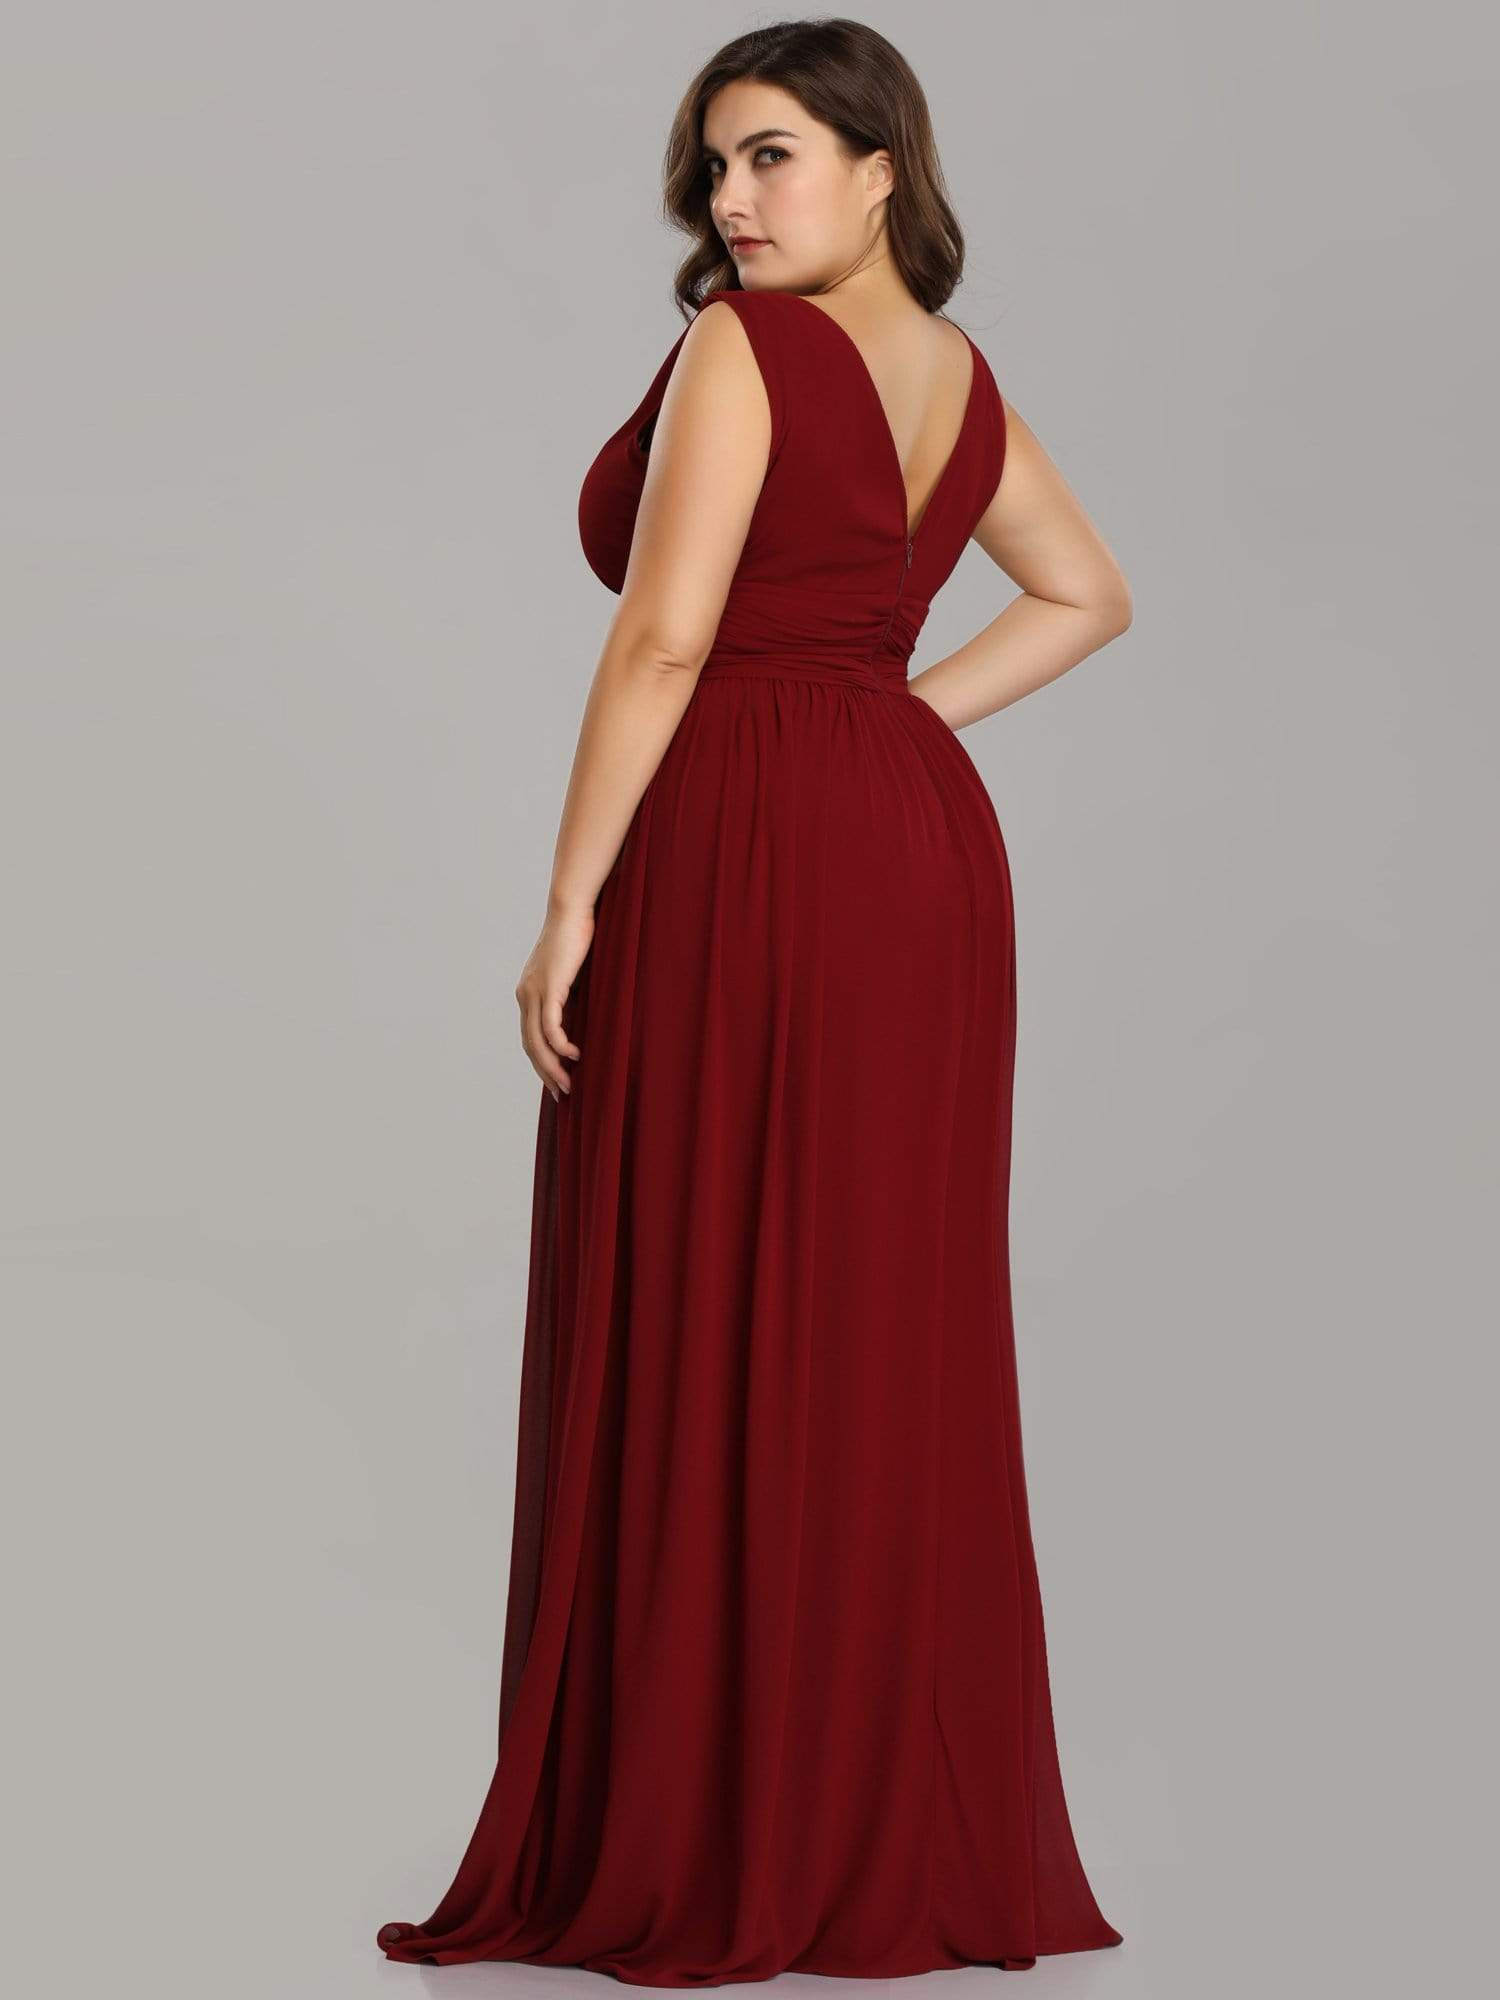 Veda V neck and back classic chiffon bridesmaid dress in burgundy